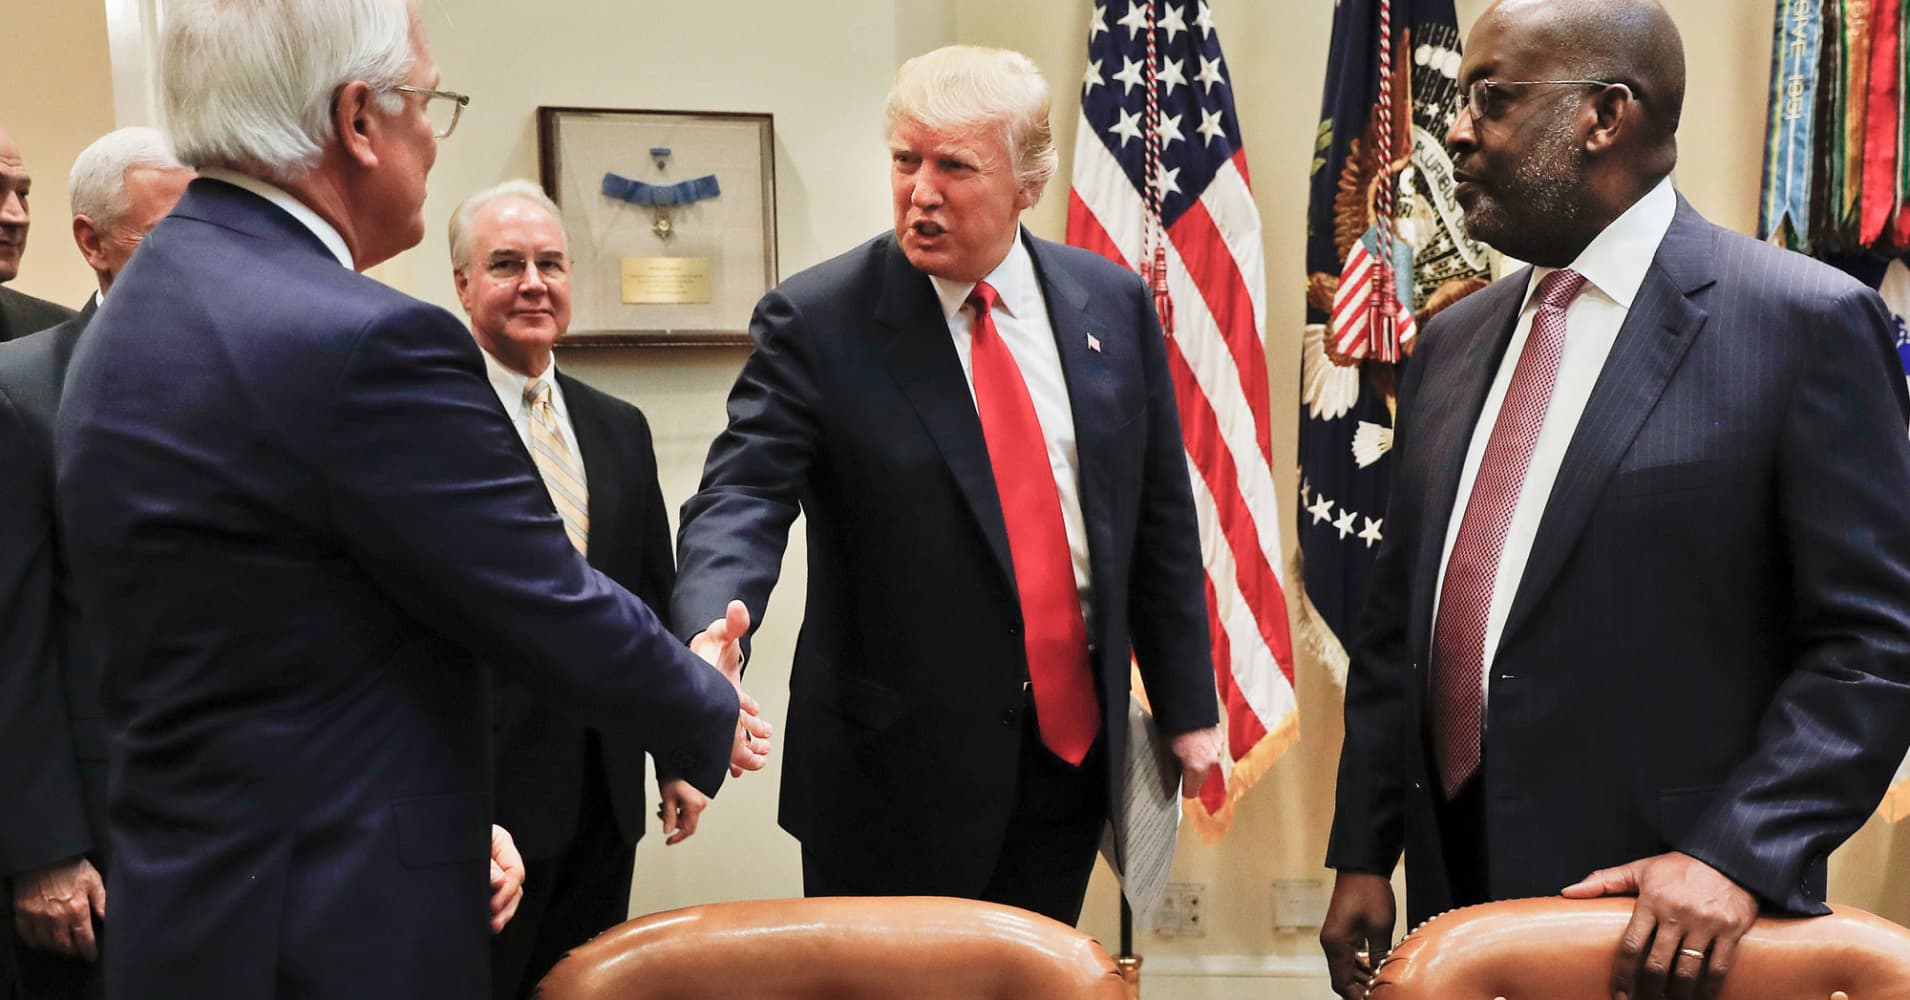 Trump meets with insurance execs on Obamacare repeal